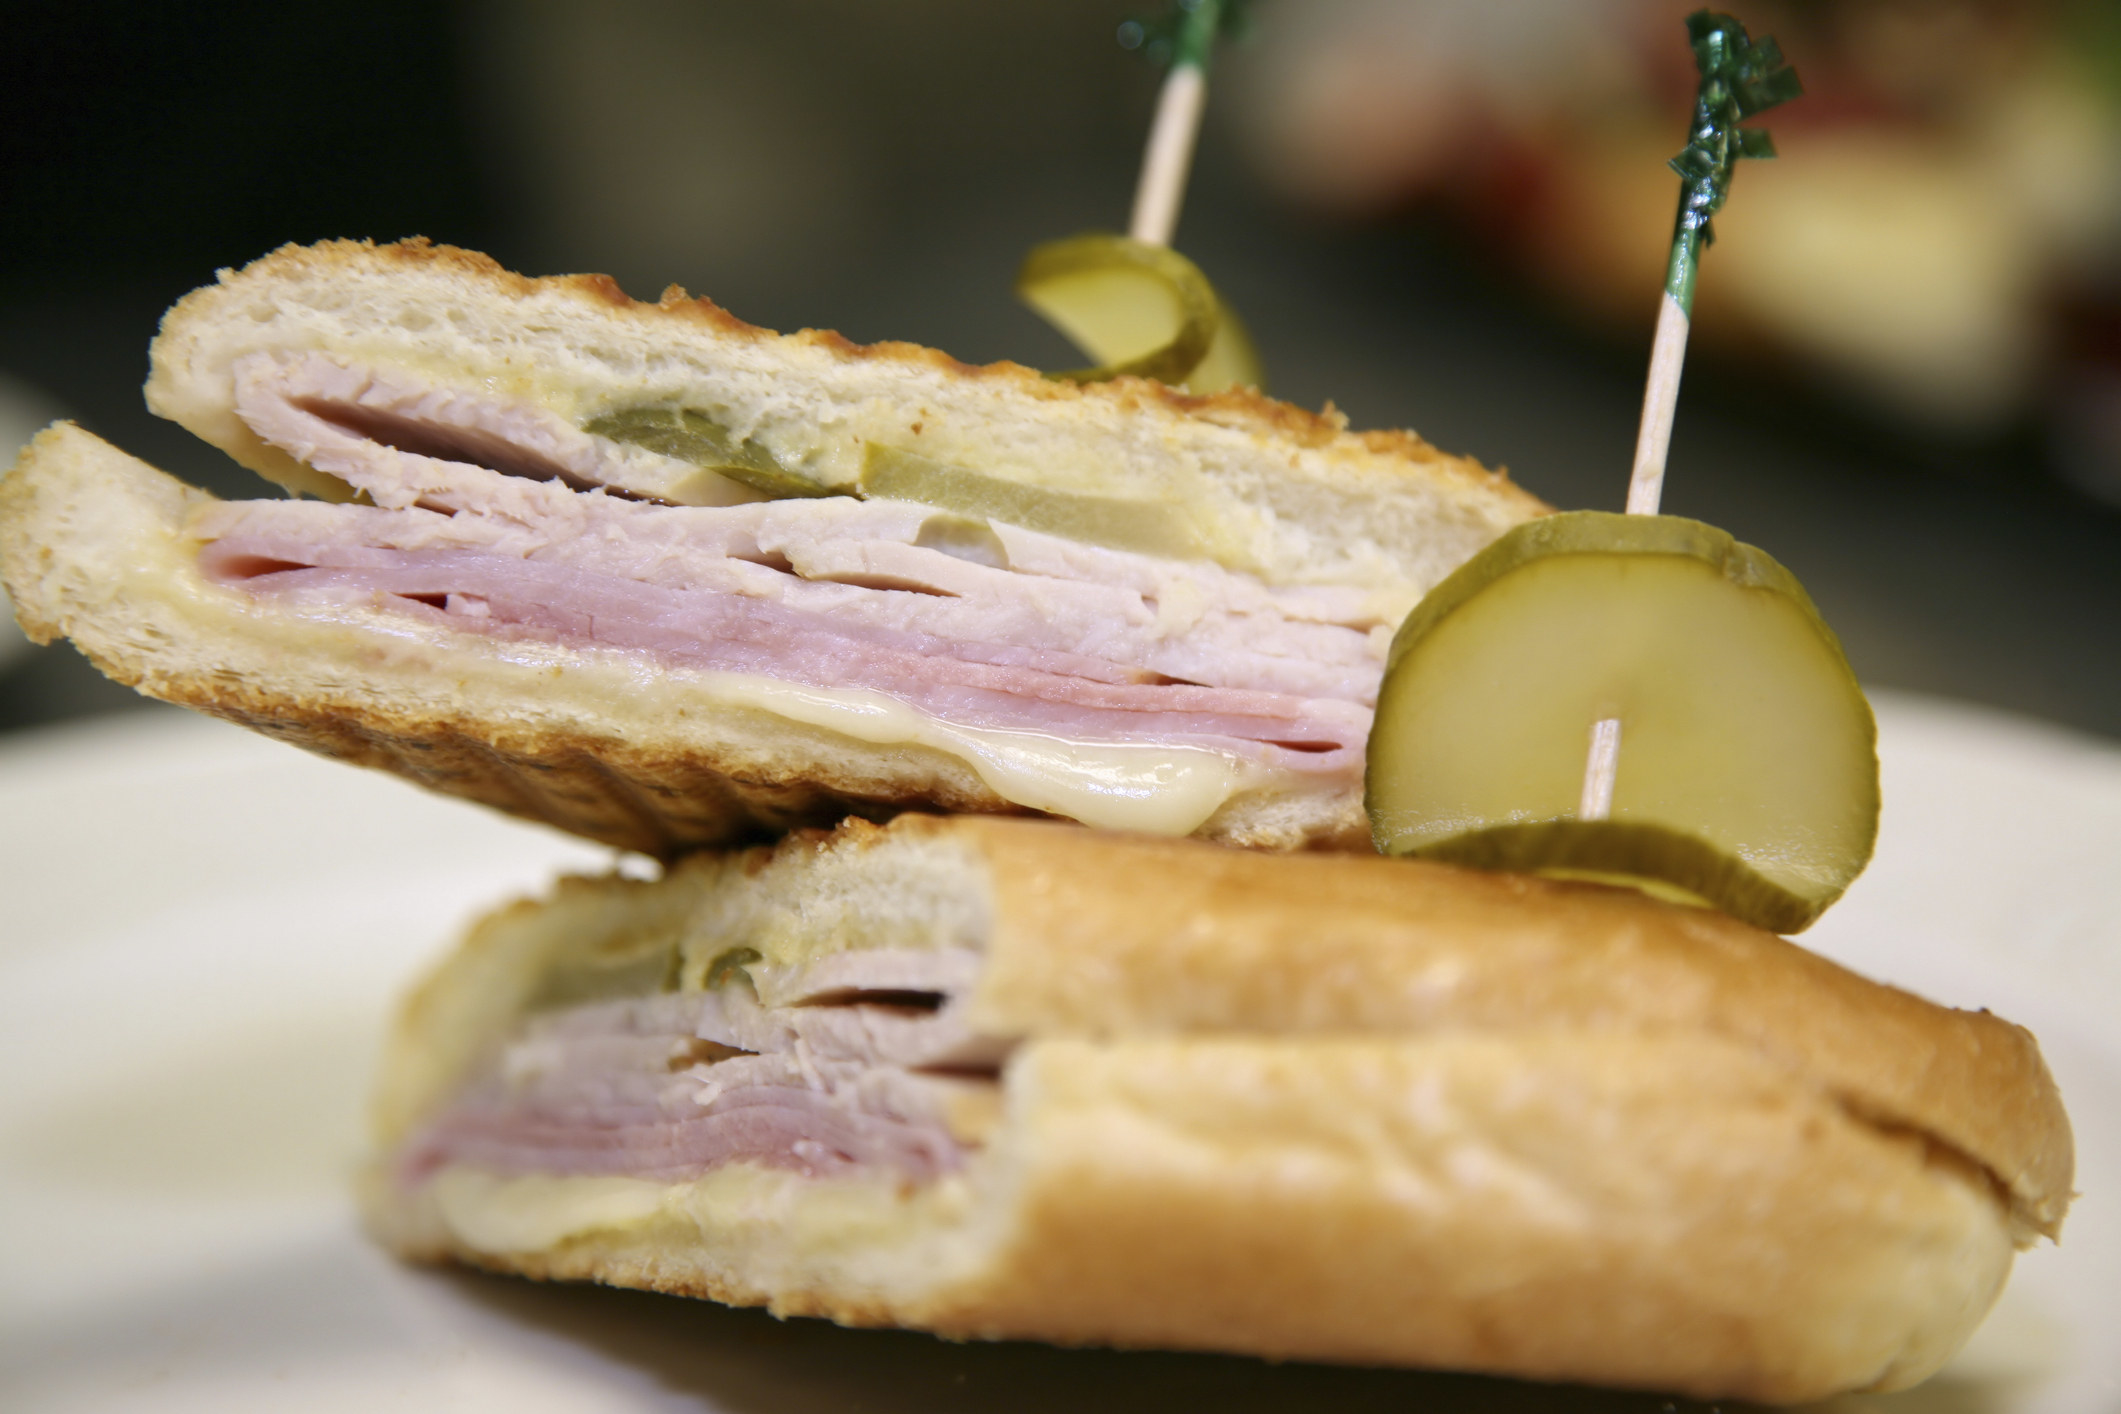 A cuban sandwich topped with pickles.